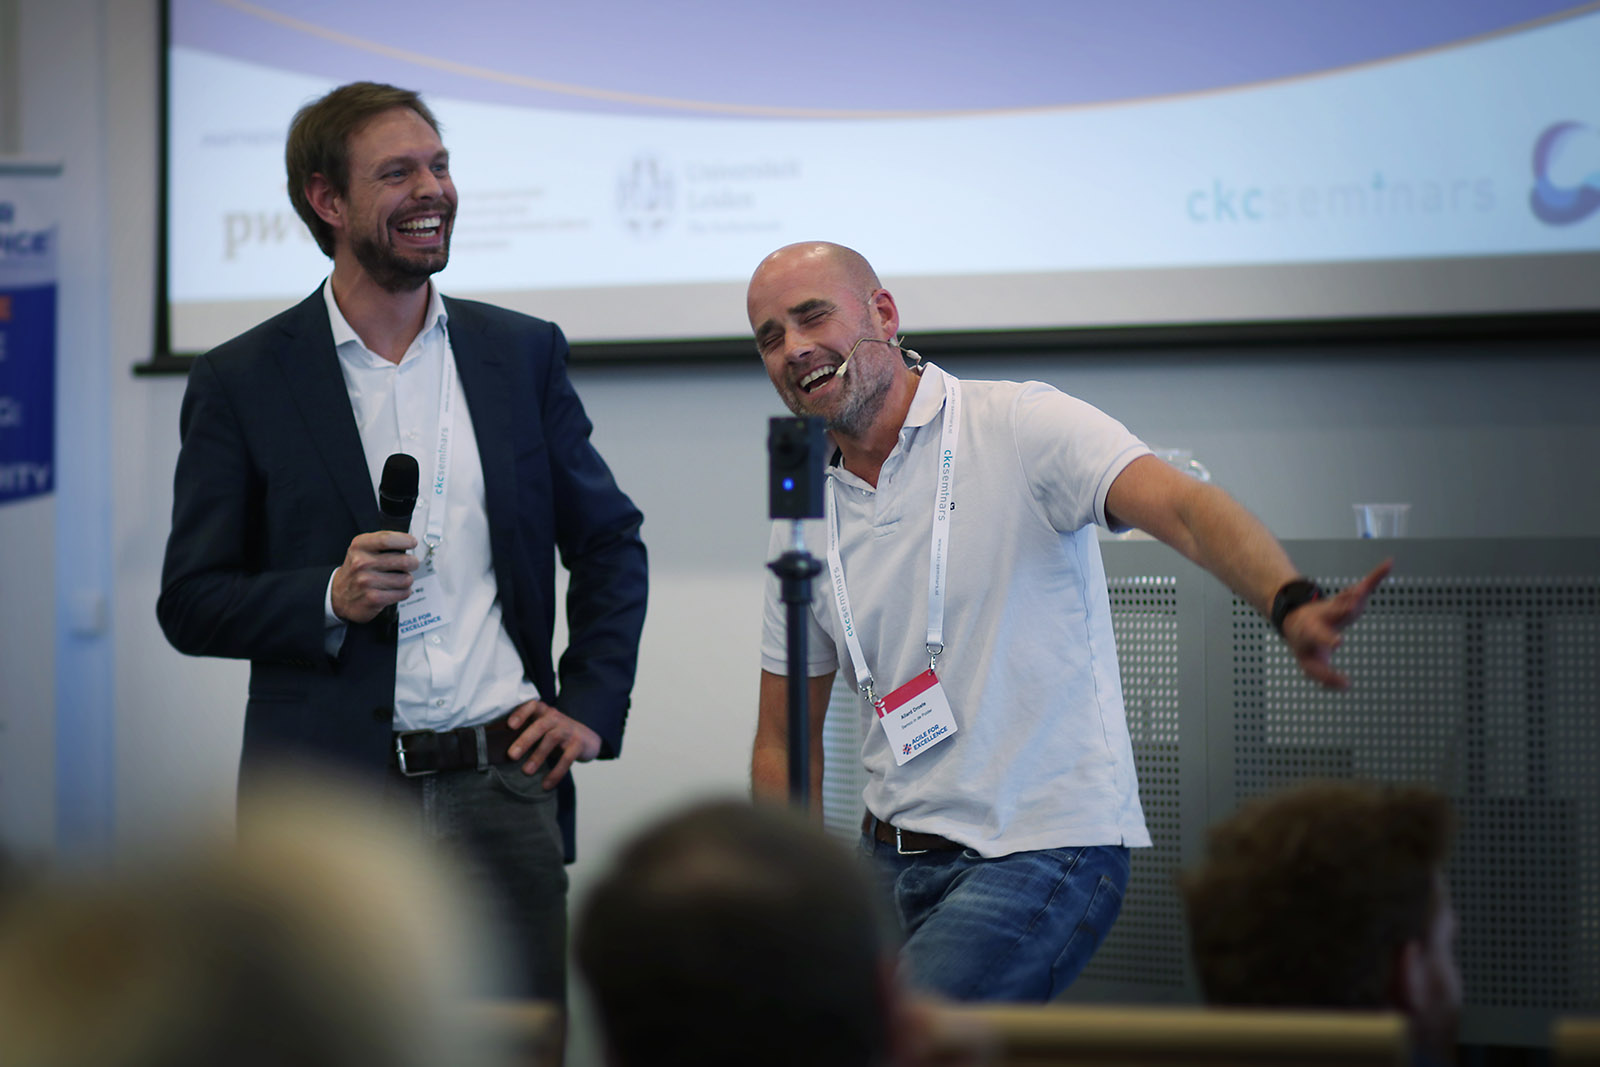 Keynote speaker Allard Droste (right), professional dreamer, entrepreneur and best-selling author of the book 'Semco in de Polder' with CFI colleague Jesse van der Mijl.